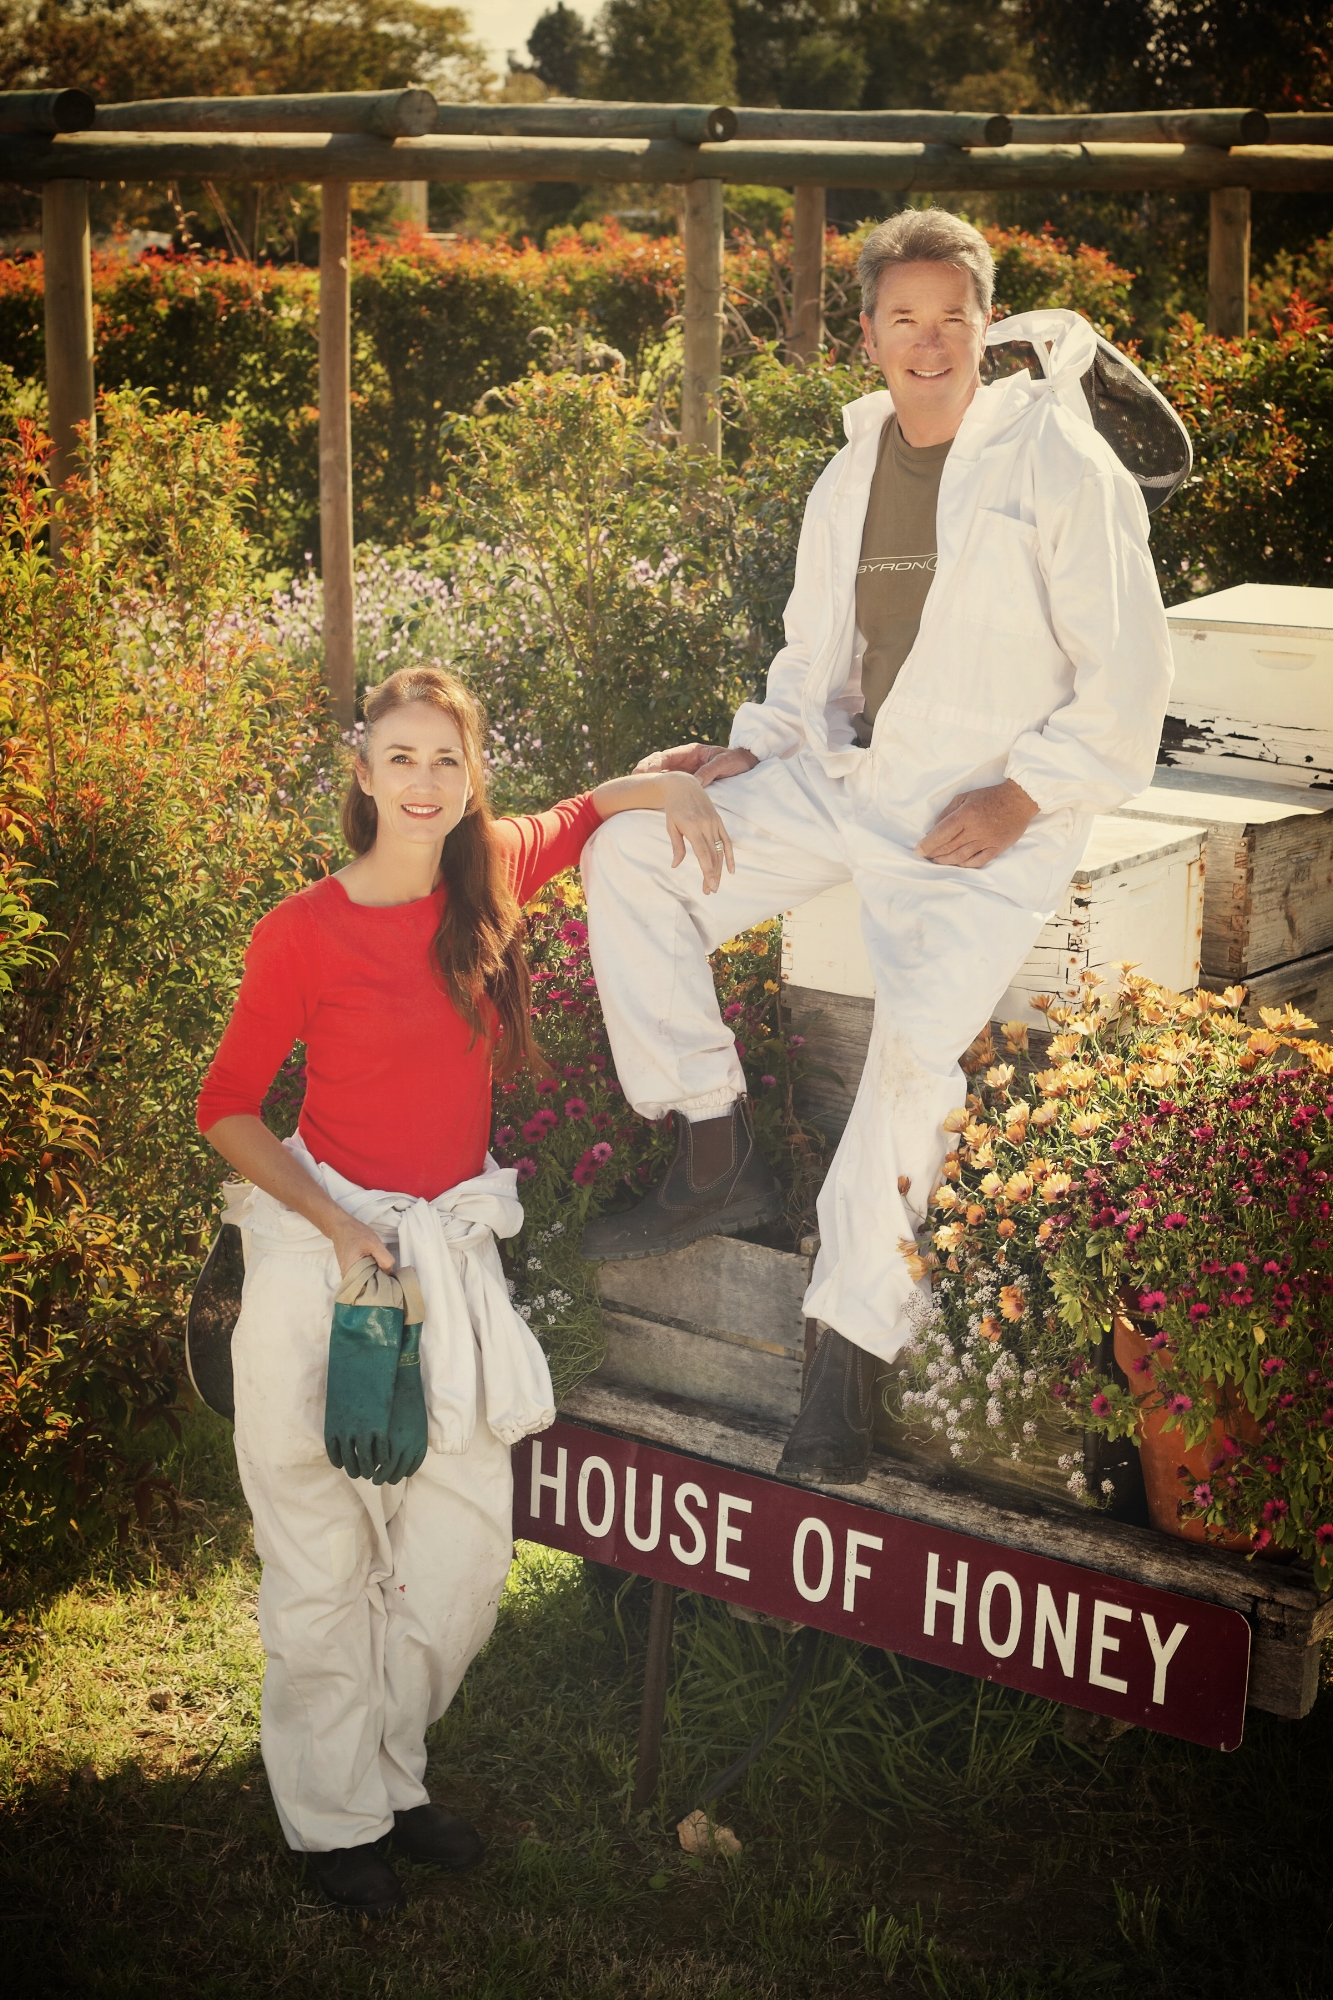 Rupert and Kim Phillips - Beekeepers at The House of Honey